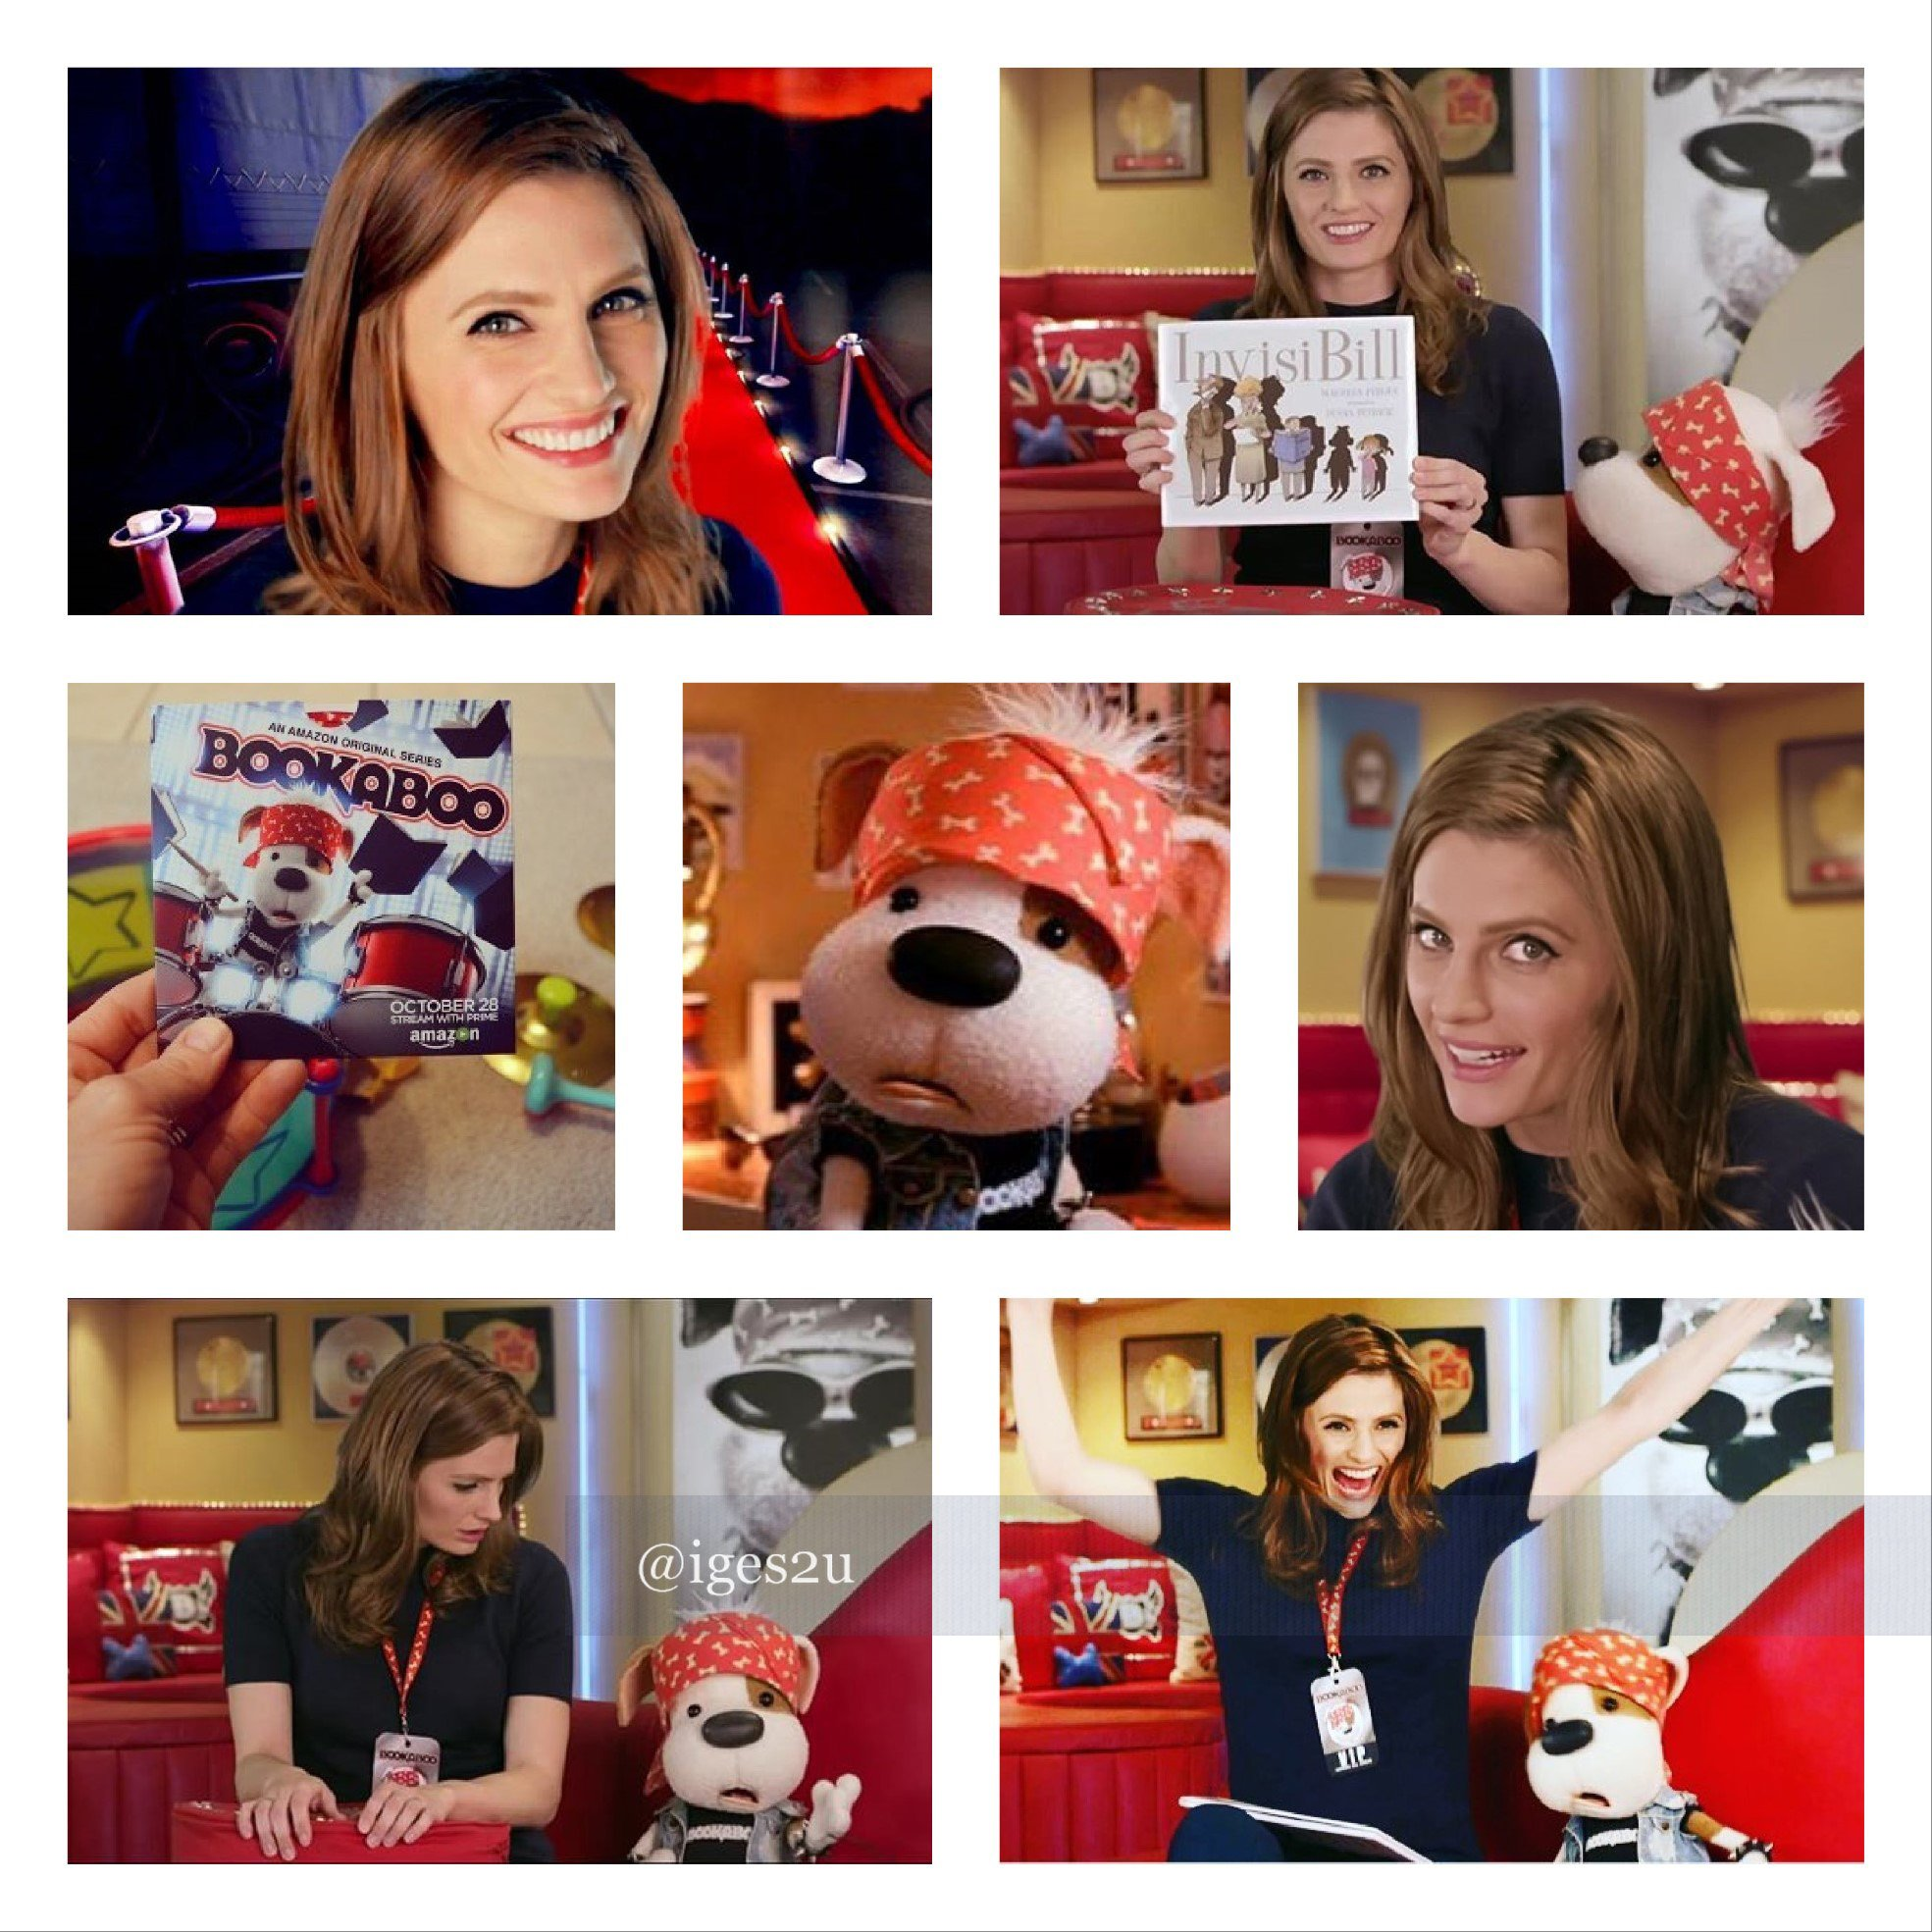 Happy Friday #FF to all my wonderful followers. Have a good weekend. 😘💕  #StanaKatic #Bookaboo #Castle https://t.co/NodeRTHO0E